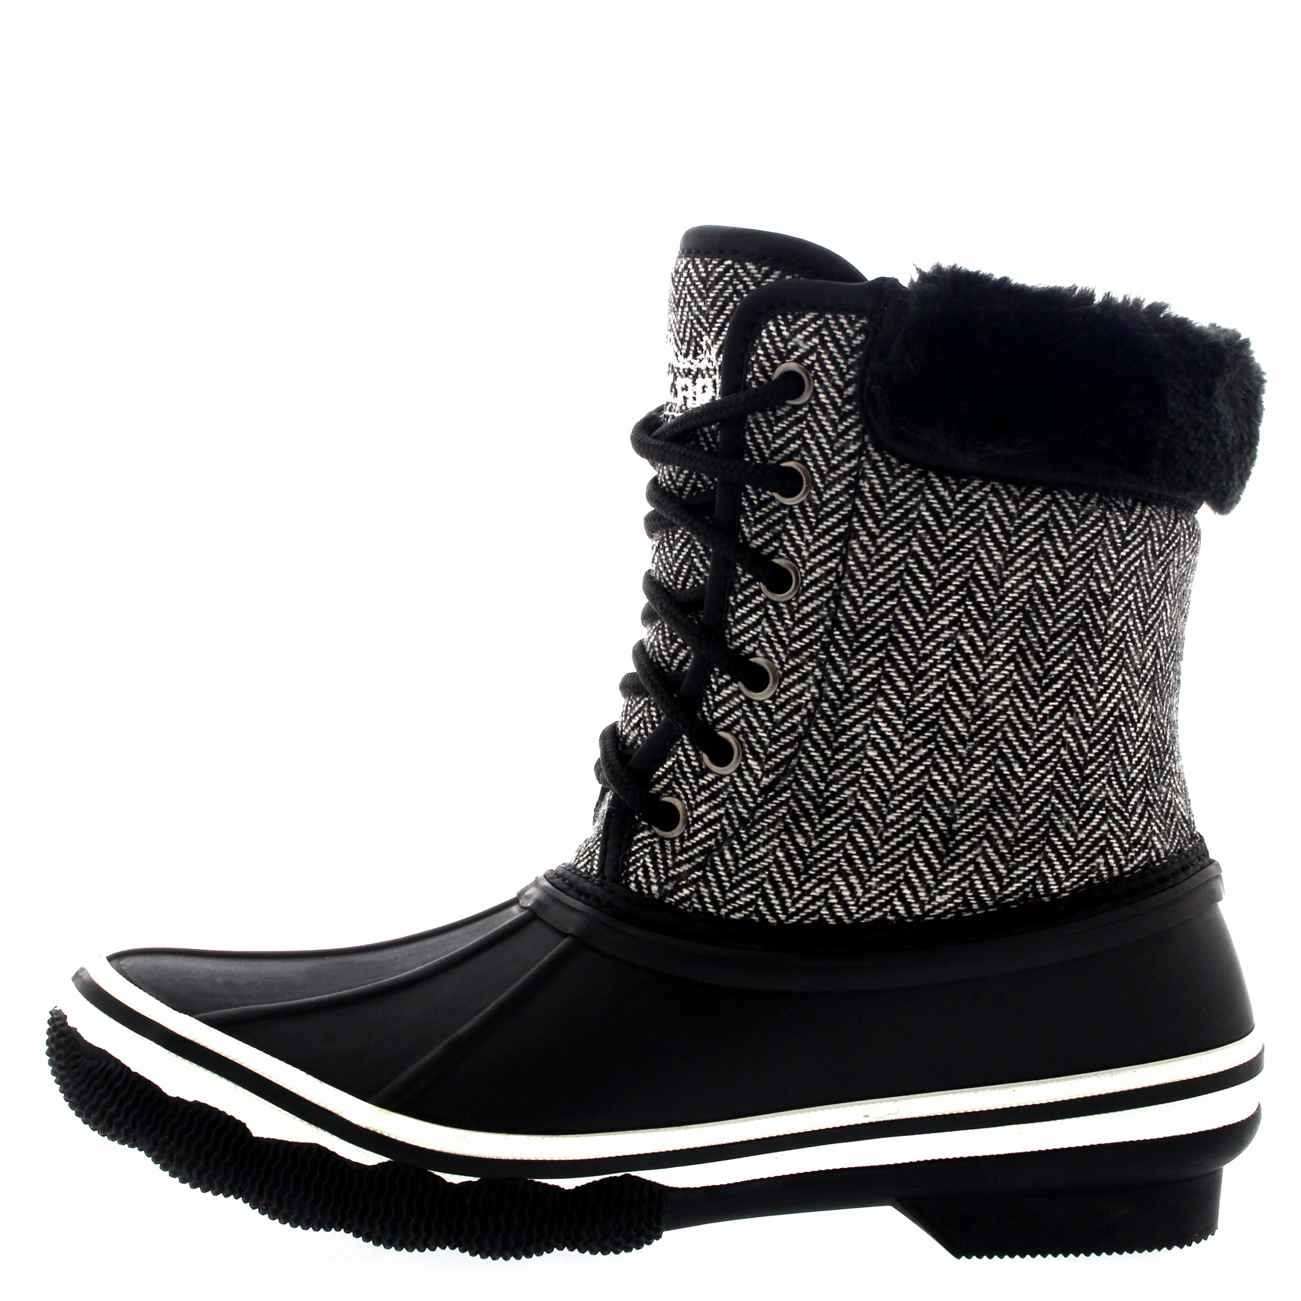 Womens Rubber Sole Deep Tread Winter Textile Fur Cuff Snow Rain ...